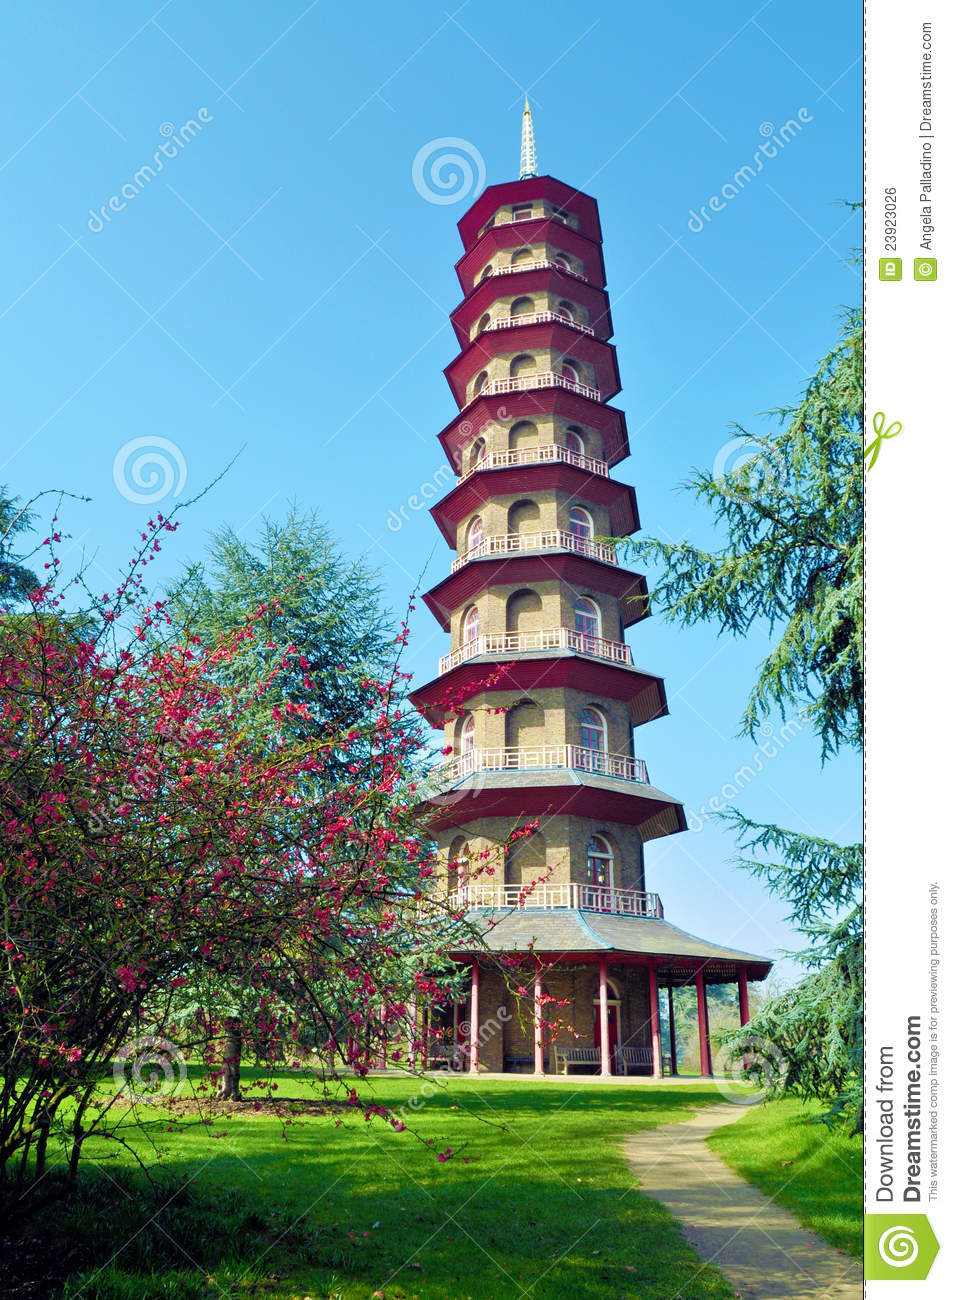 Chinese Pagoda In Kew Gardens Royalty Free Stock Image - Image ...